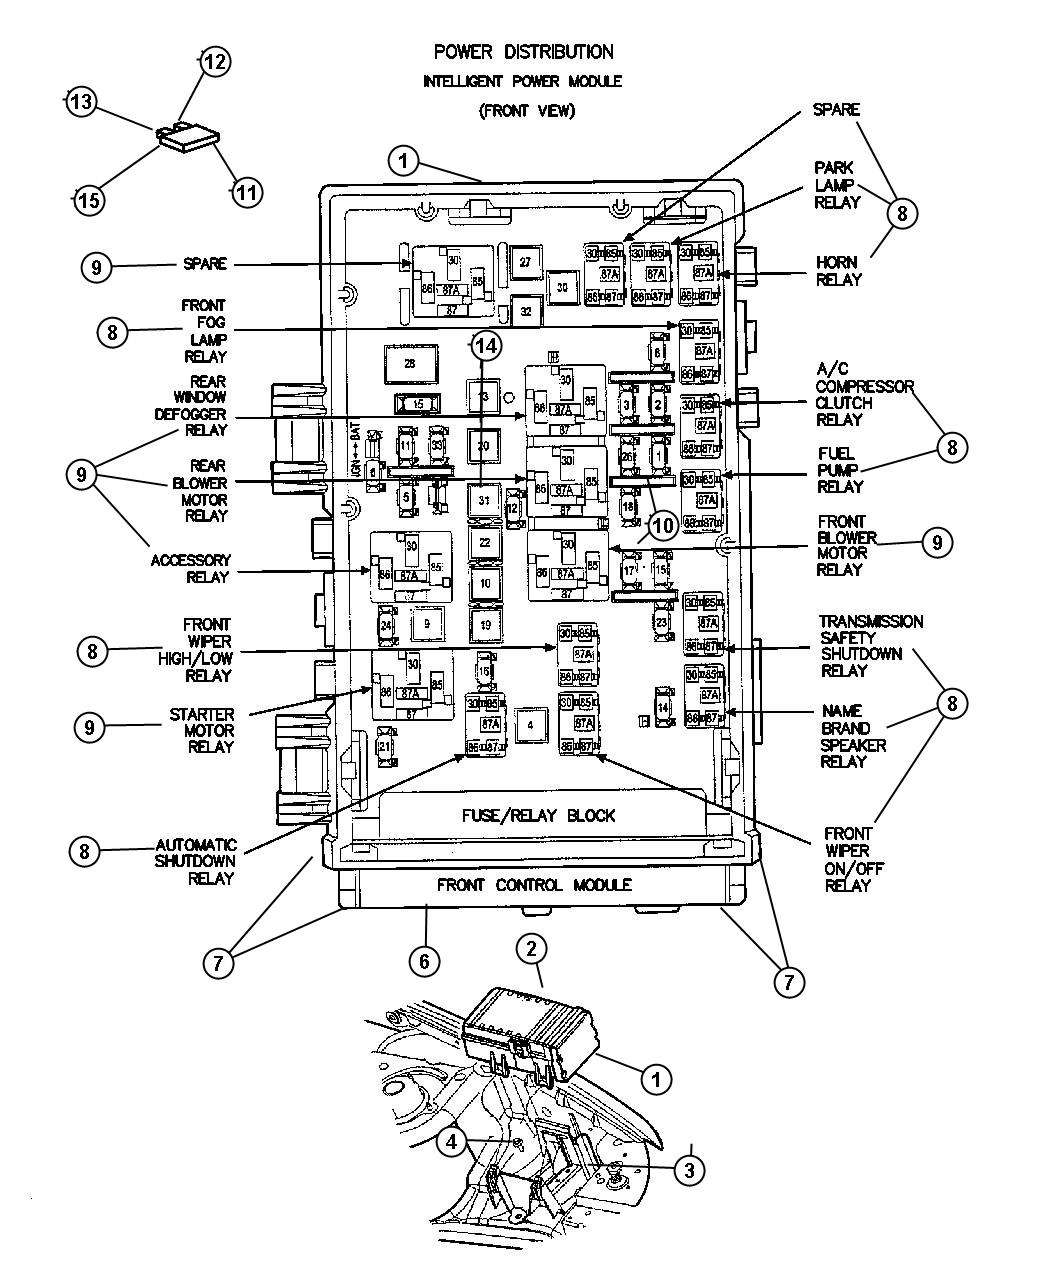 2002 Chrysler Town & Country Module, power distribution